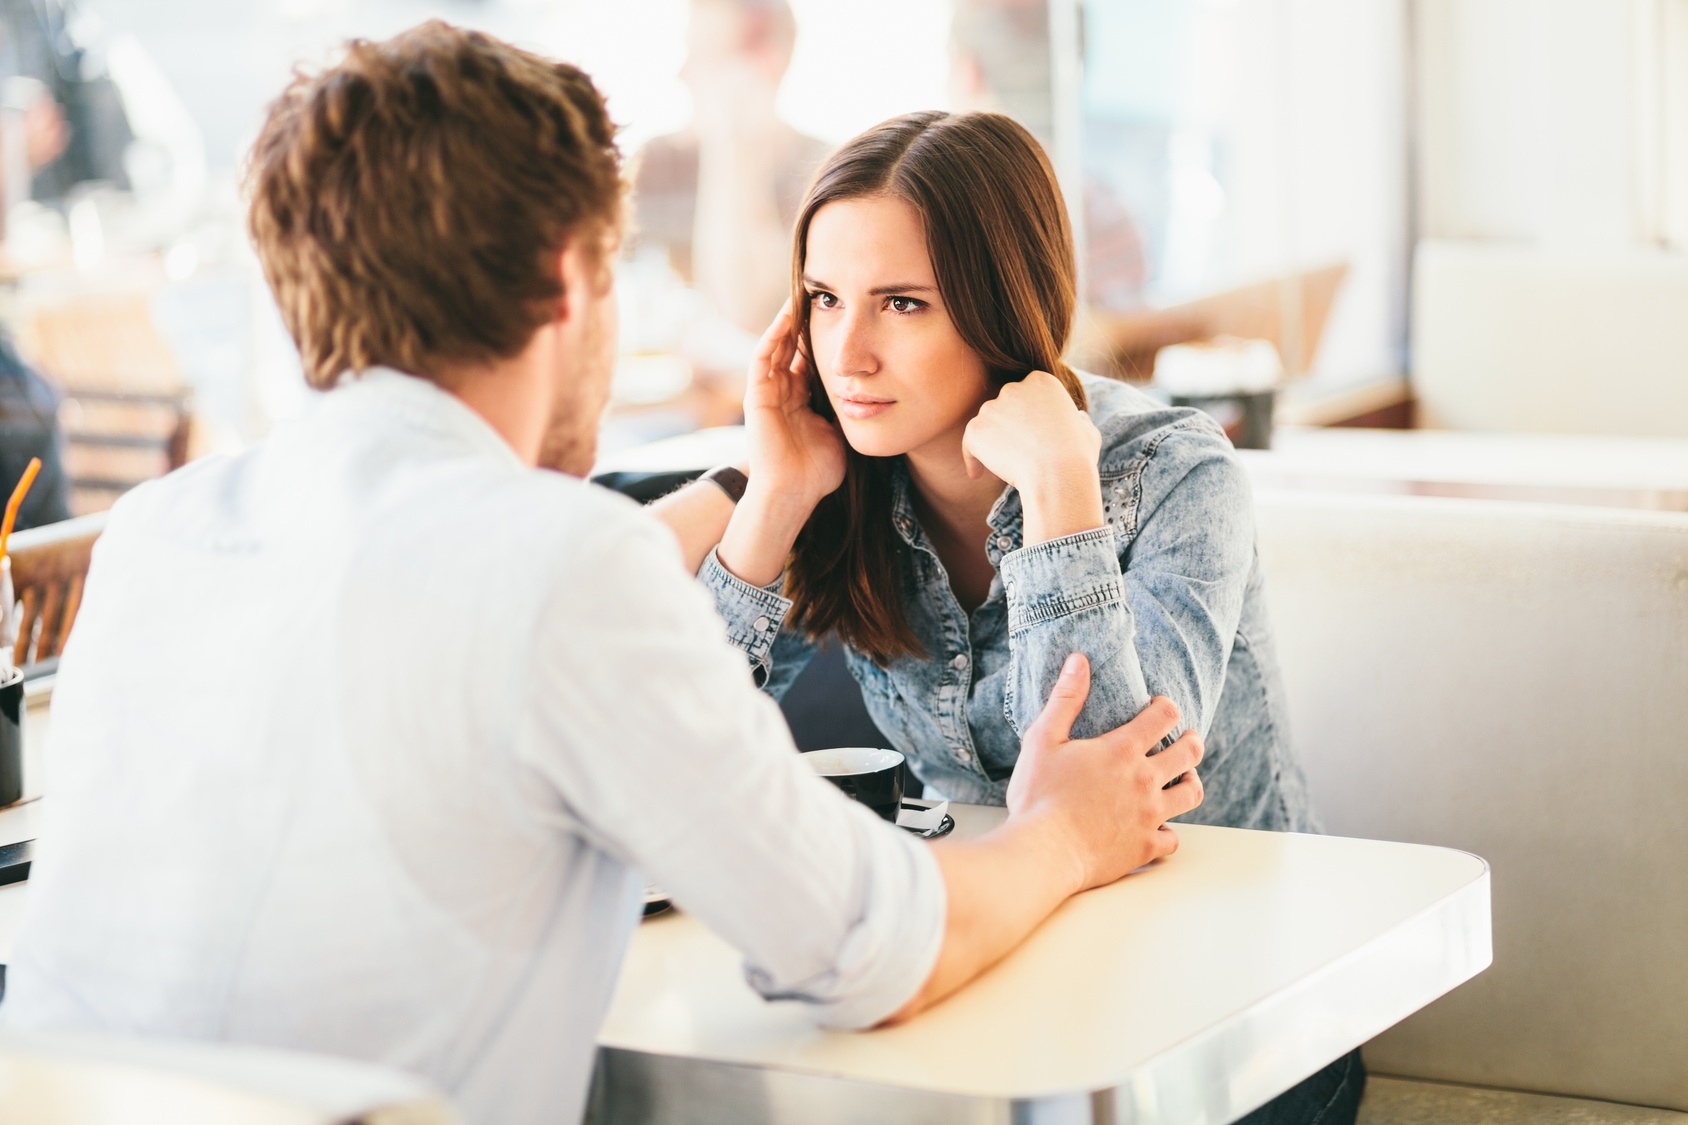 17 Questions to Ask on a First Date